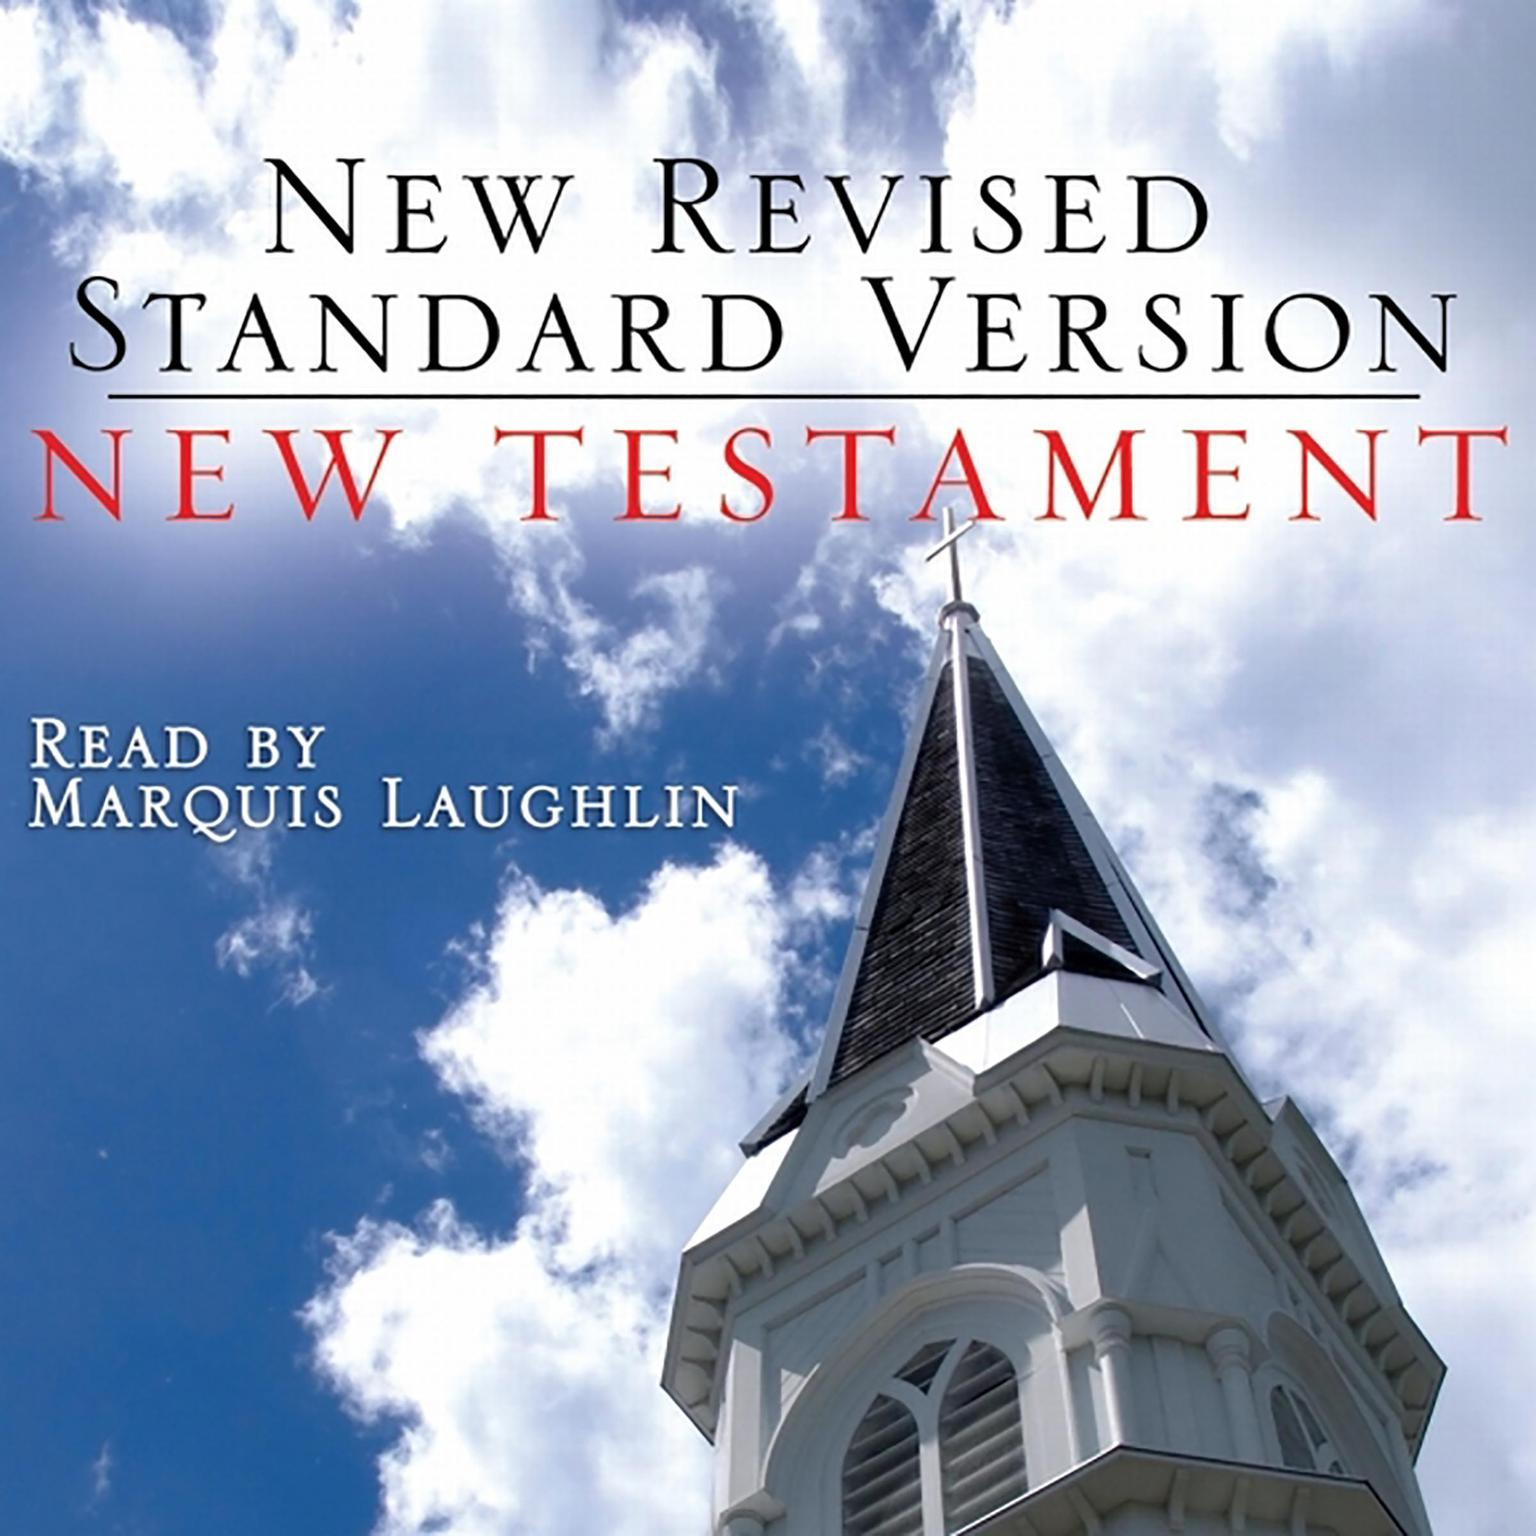 Printable New Revised Standard Version: New Testament Audiobook Cover Art